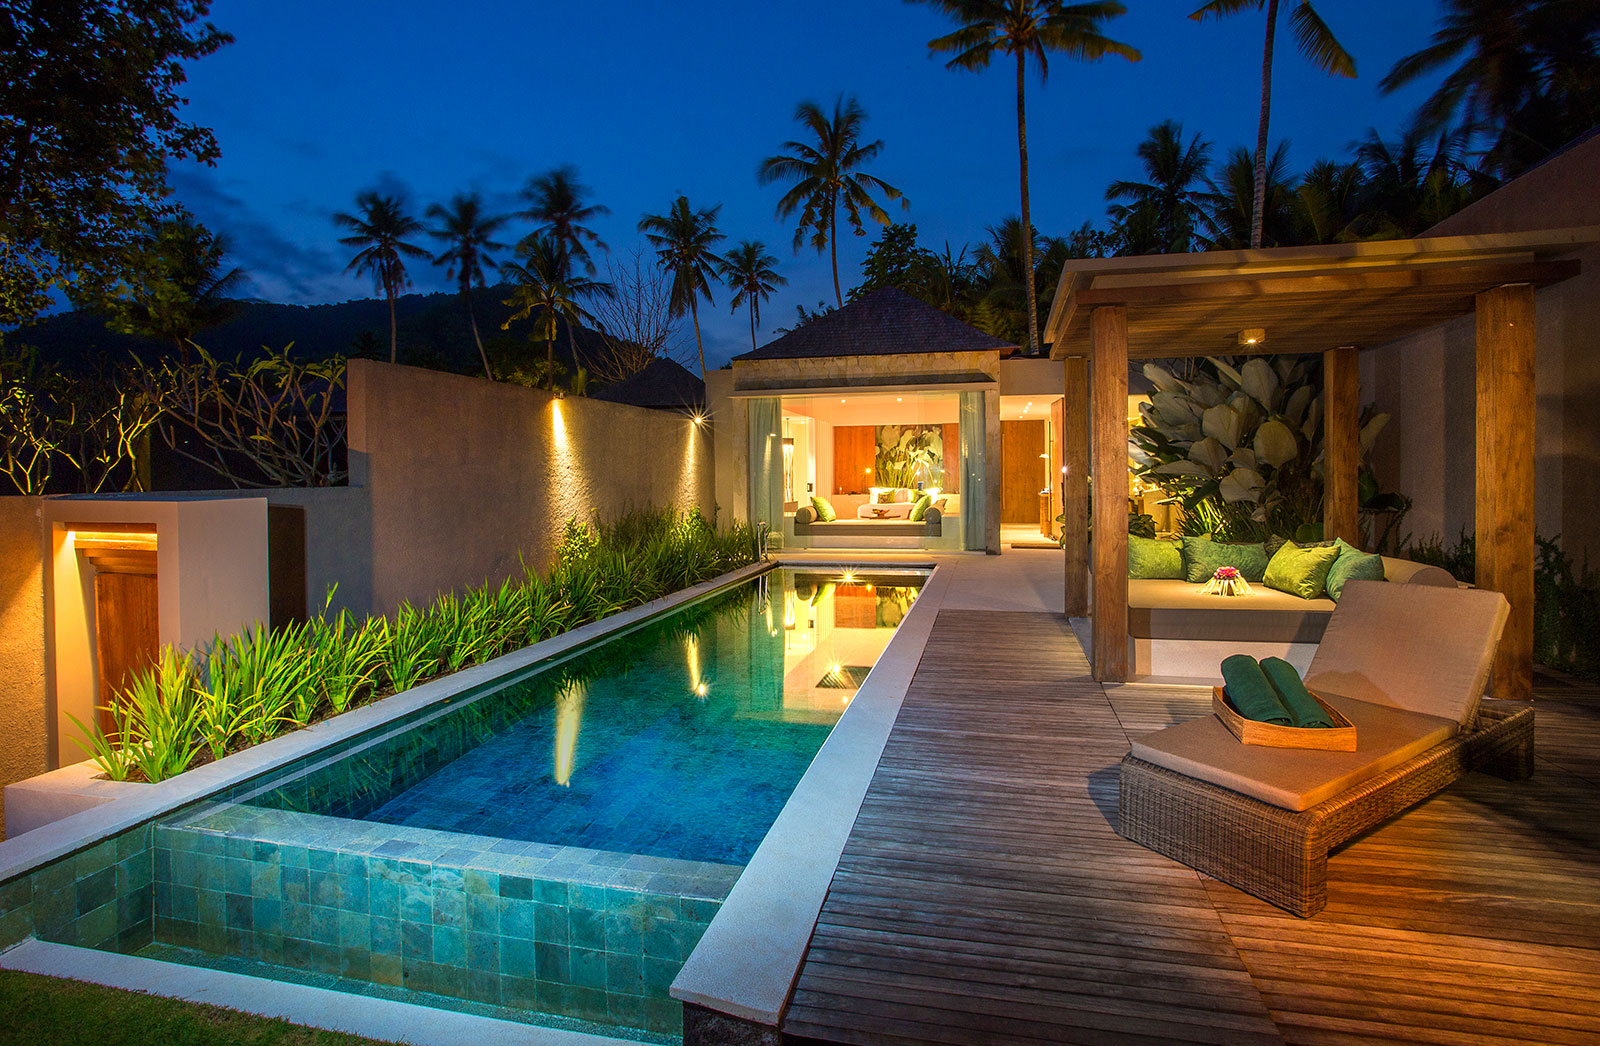 Candi beach villas - Hotels in lansdowne with swimming pool ...